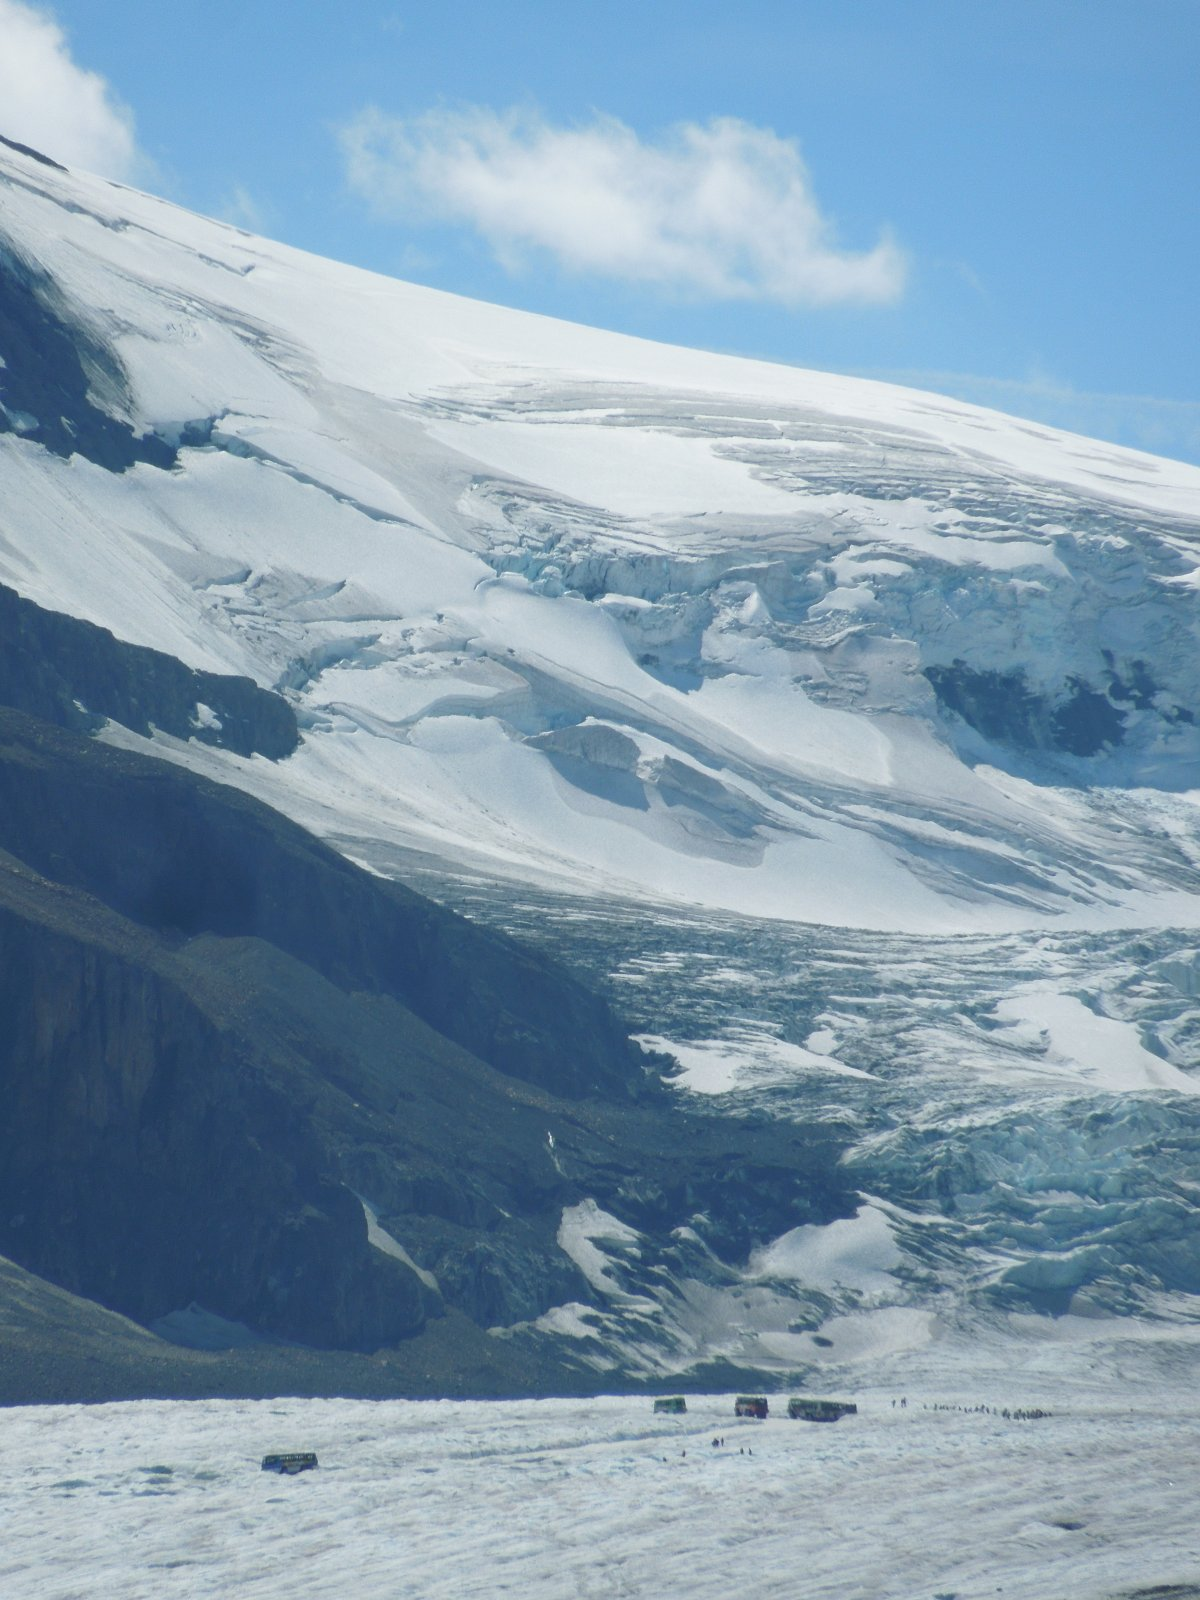 Click image for larger version  Name:Dawson Creek to Icefield Parkway to Cochrane 287.jpg Views:45 Size:267.6 KB ID:222525